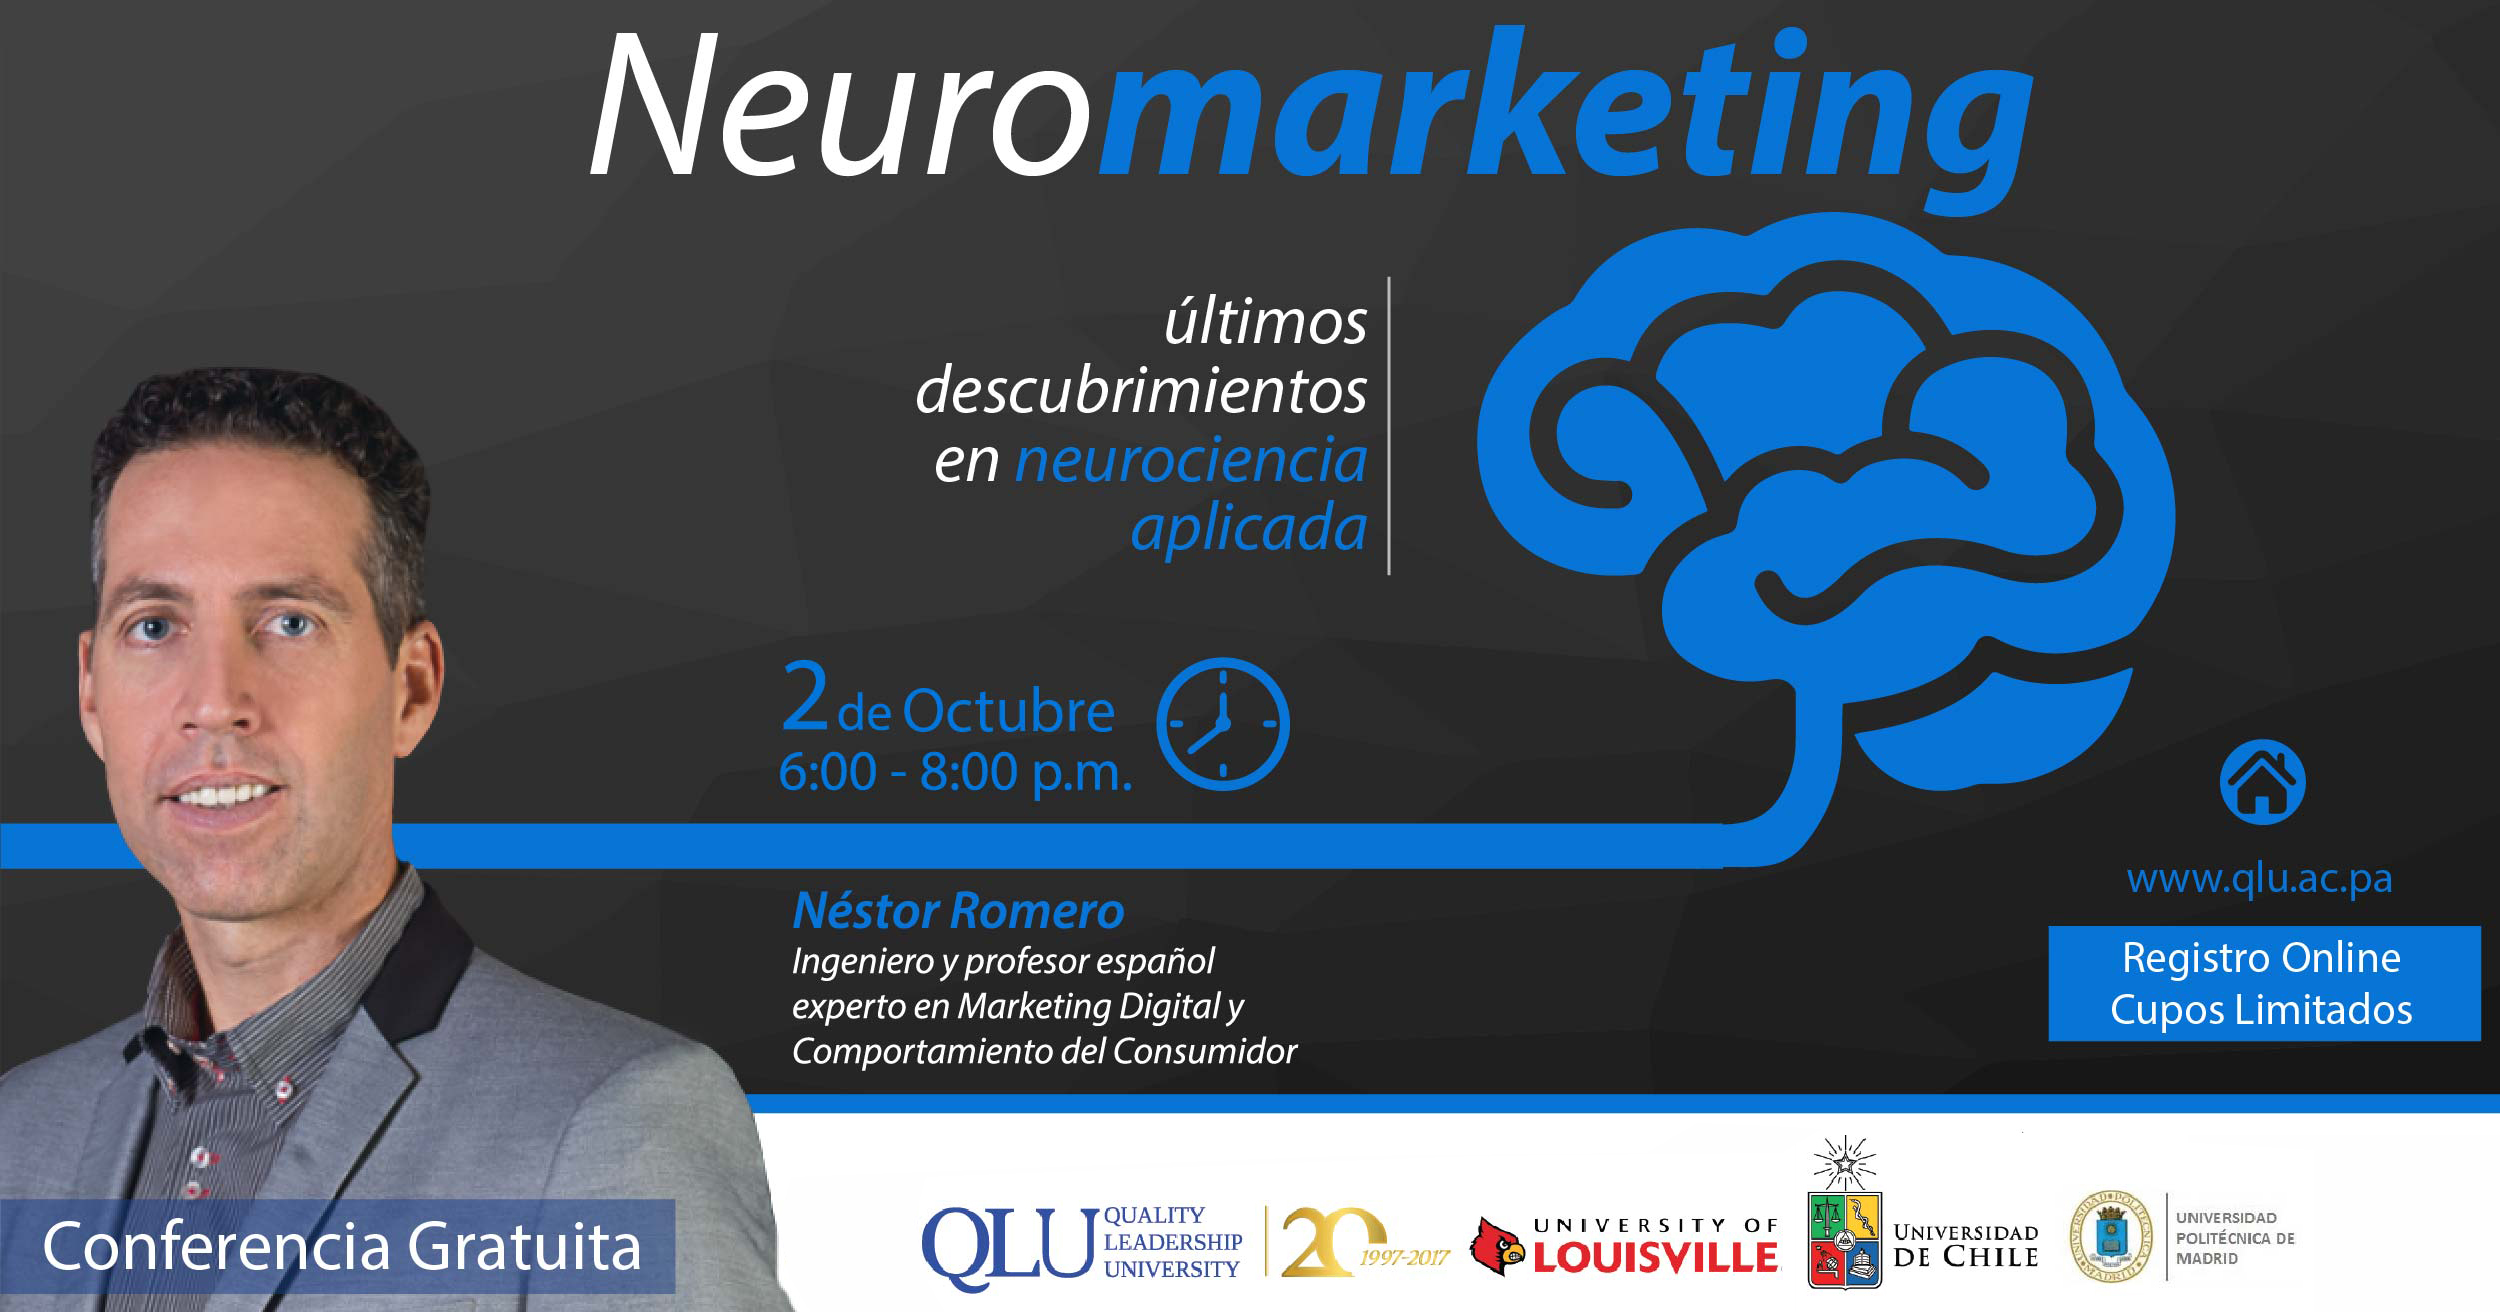 nestor romero neuromarketing conferencia panama